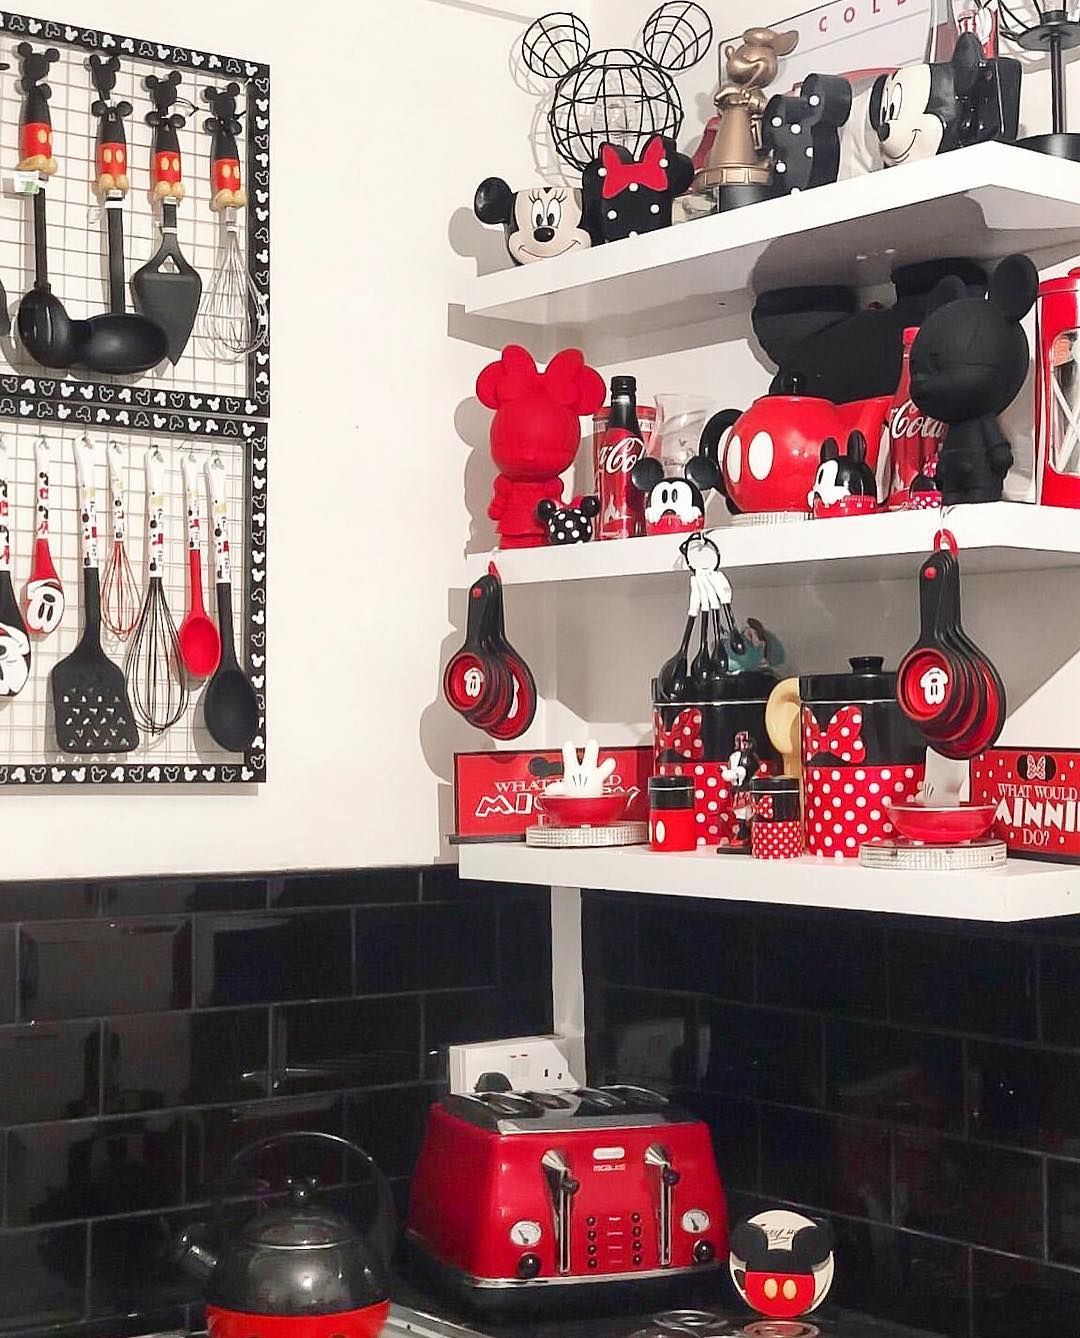 "Disney At Home on Instagram: ""Happy Friday!!! Loving this very Mickey kitchen from our friend @disney_anastasia97! Thank you so much for sharing!!️️ #mydisneyhome…"""